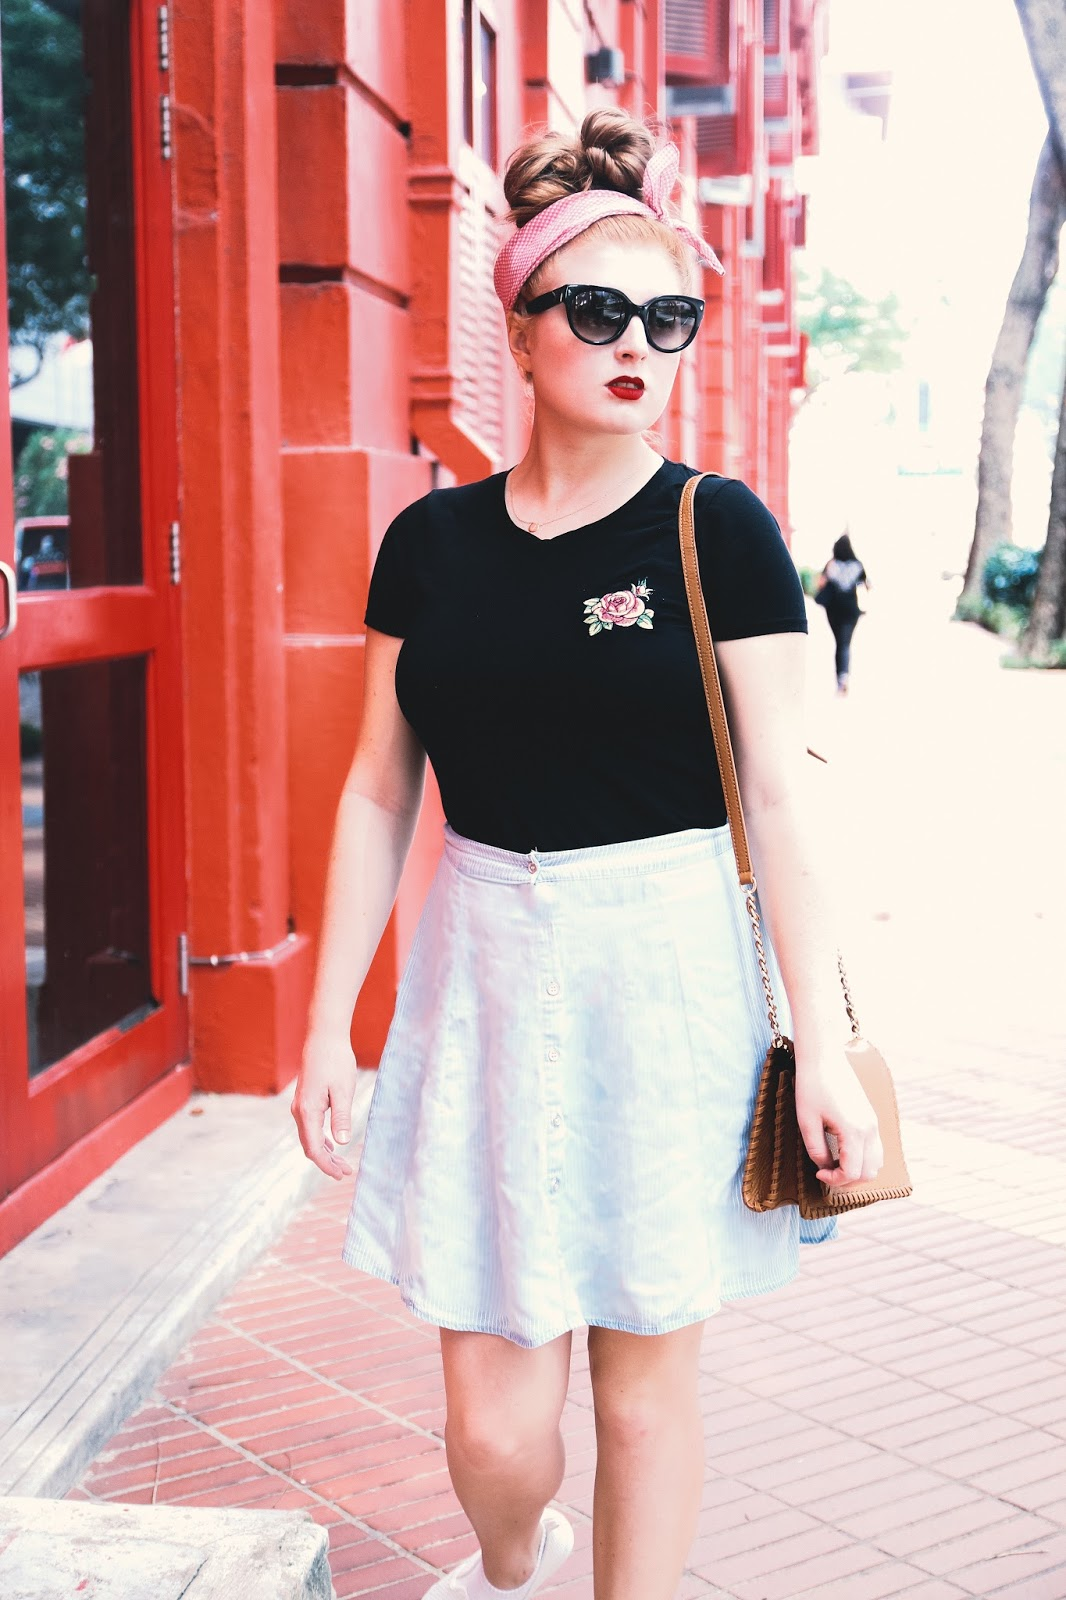 HOW TO STYLE A ROSE EMBROIDERED TOP FOR SPRING